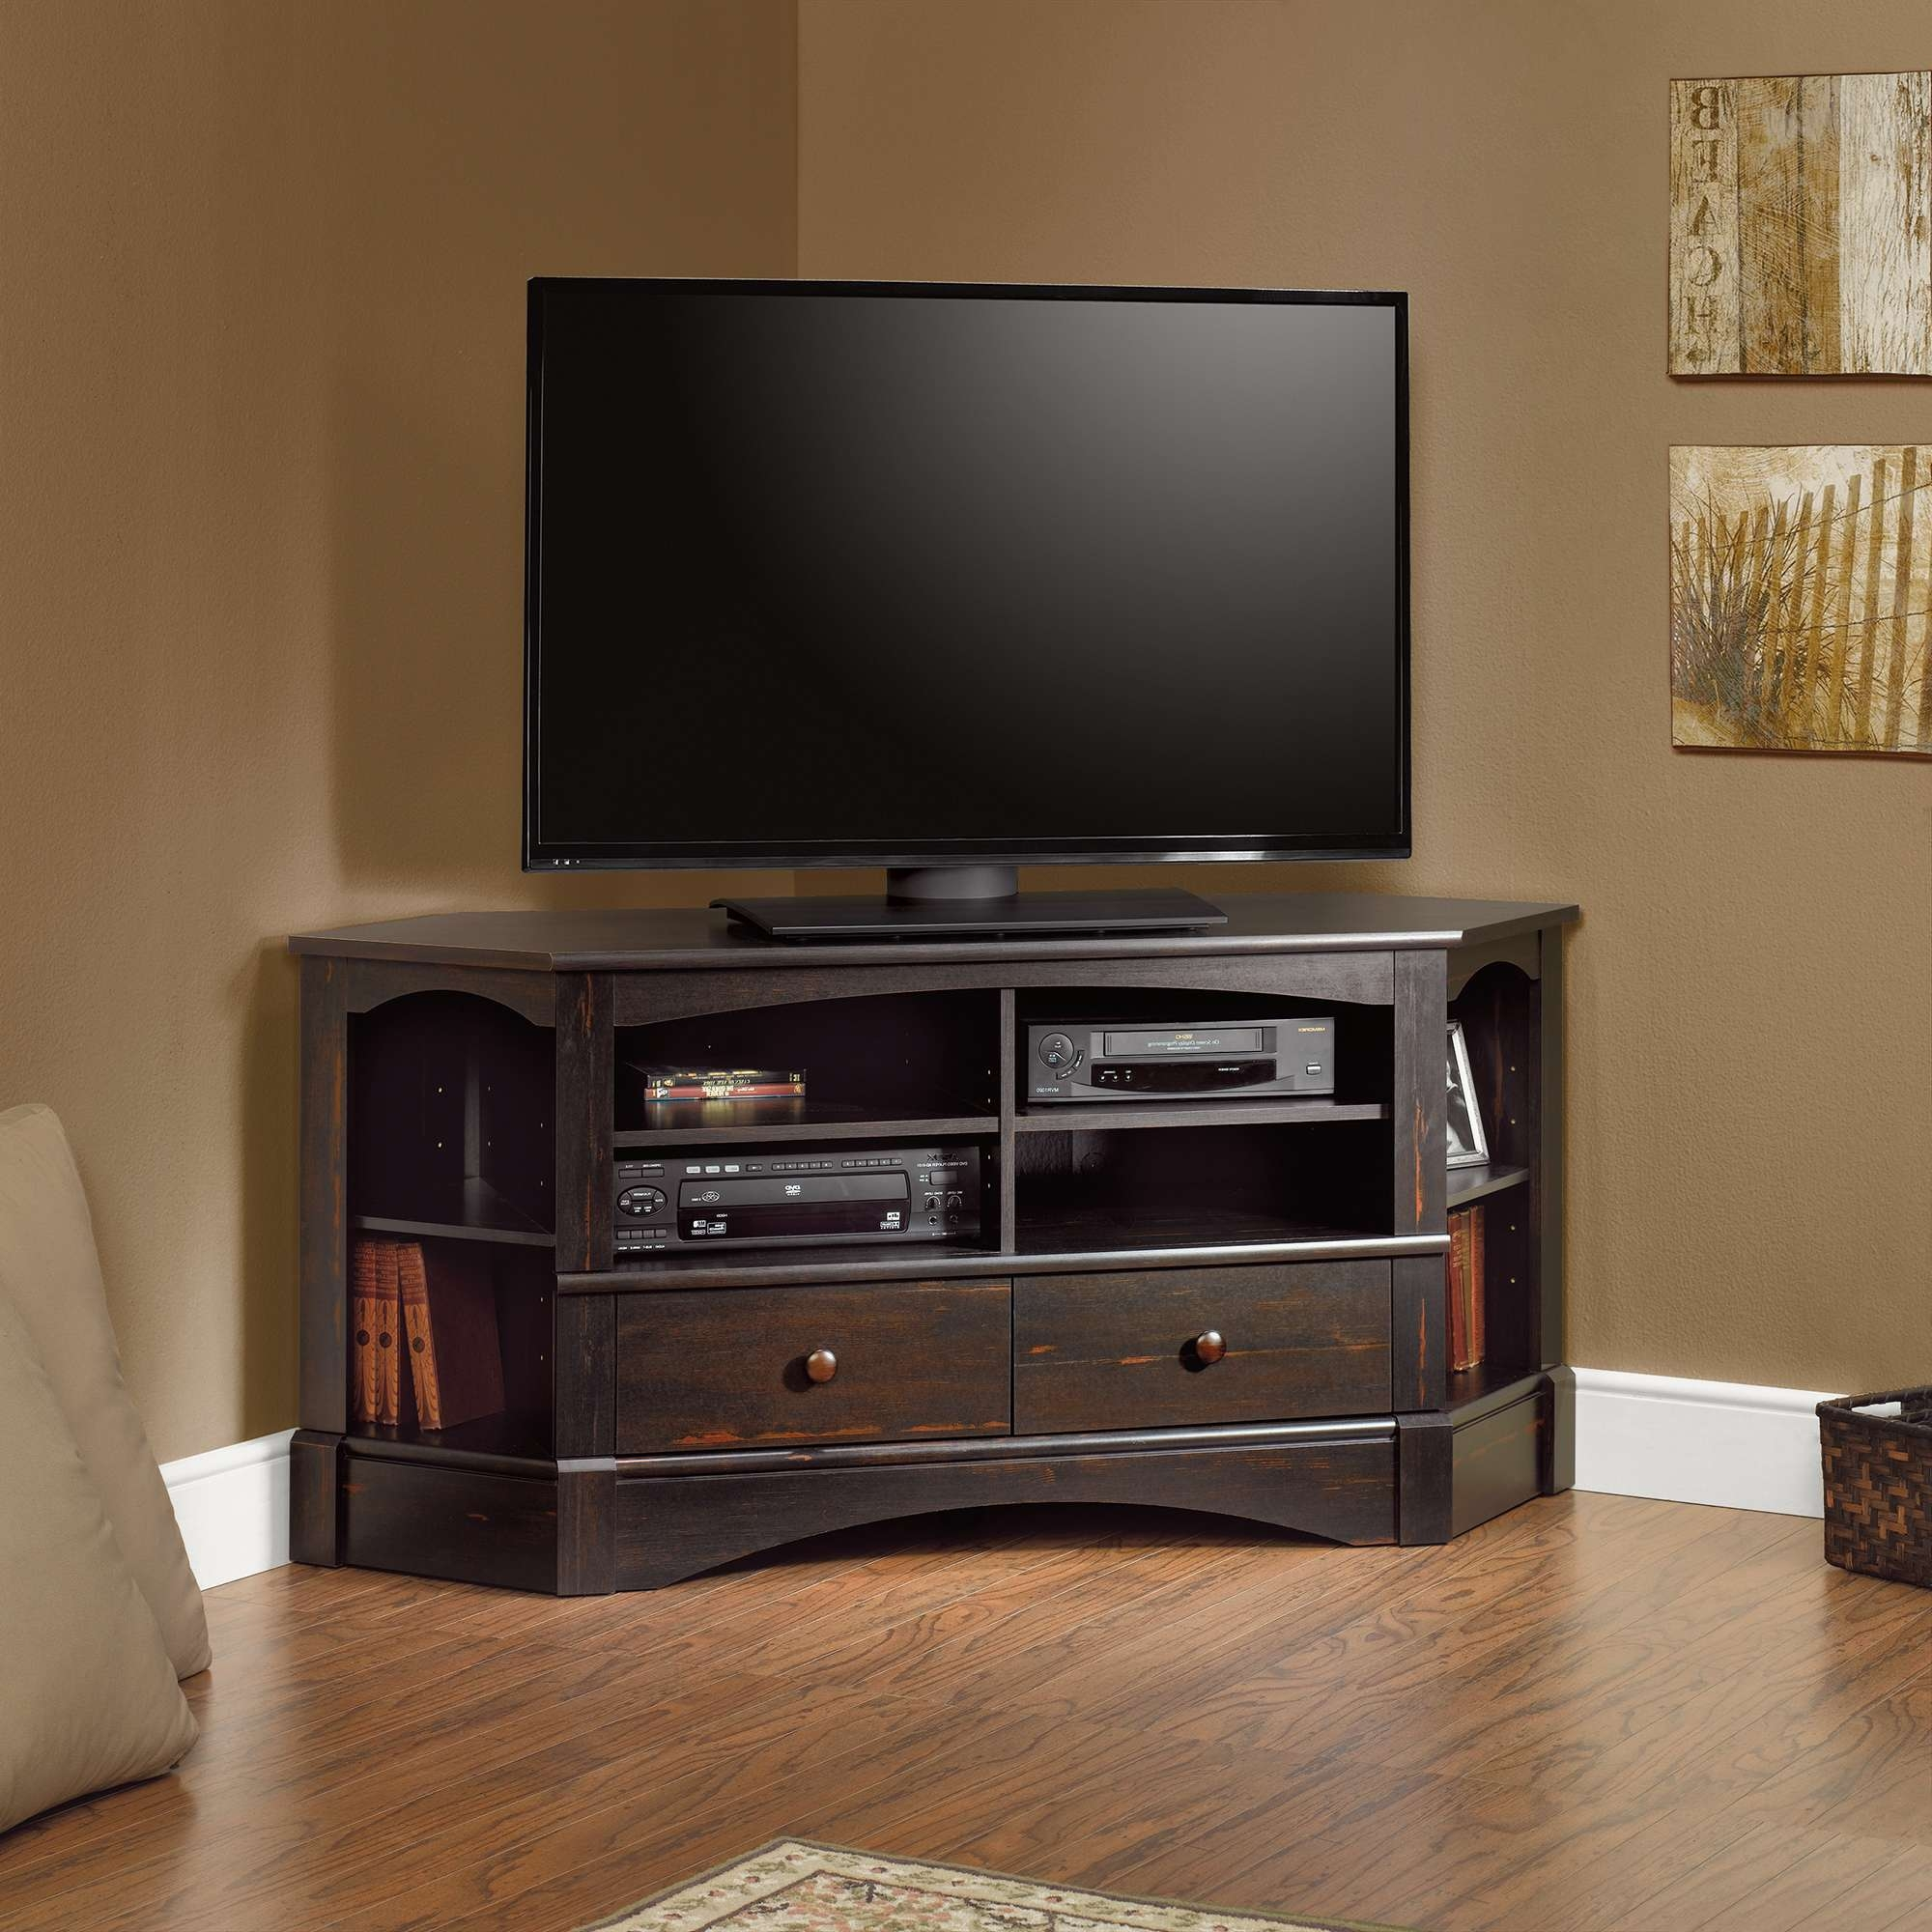 Tv Stand : Tv Stand Corner Black Fireplace Walnut Unit Standtv Within Tv Cabinets Corner Units (View 20 of 20)